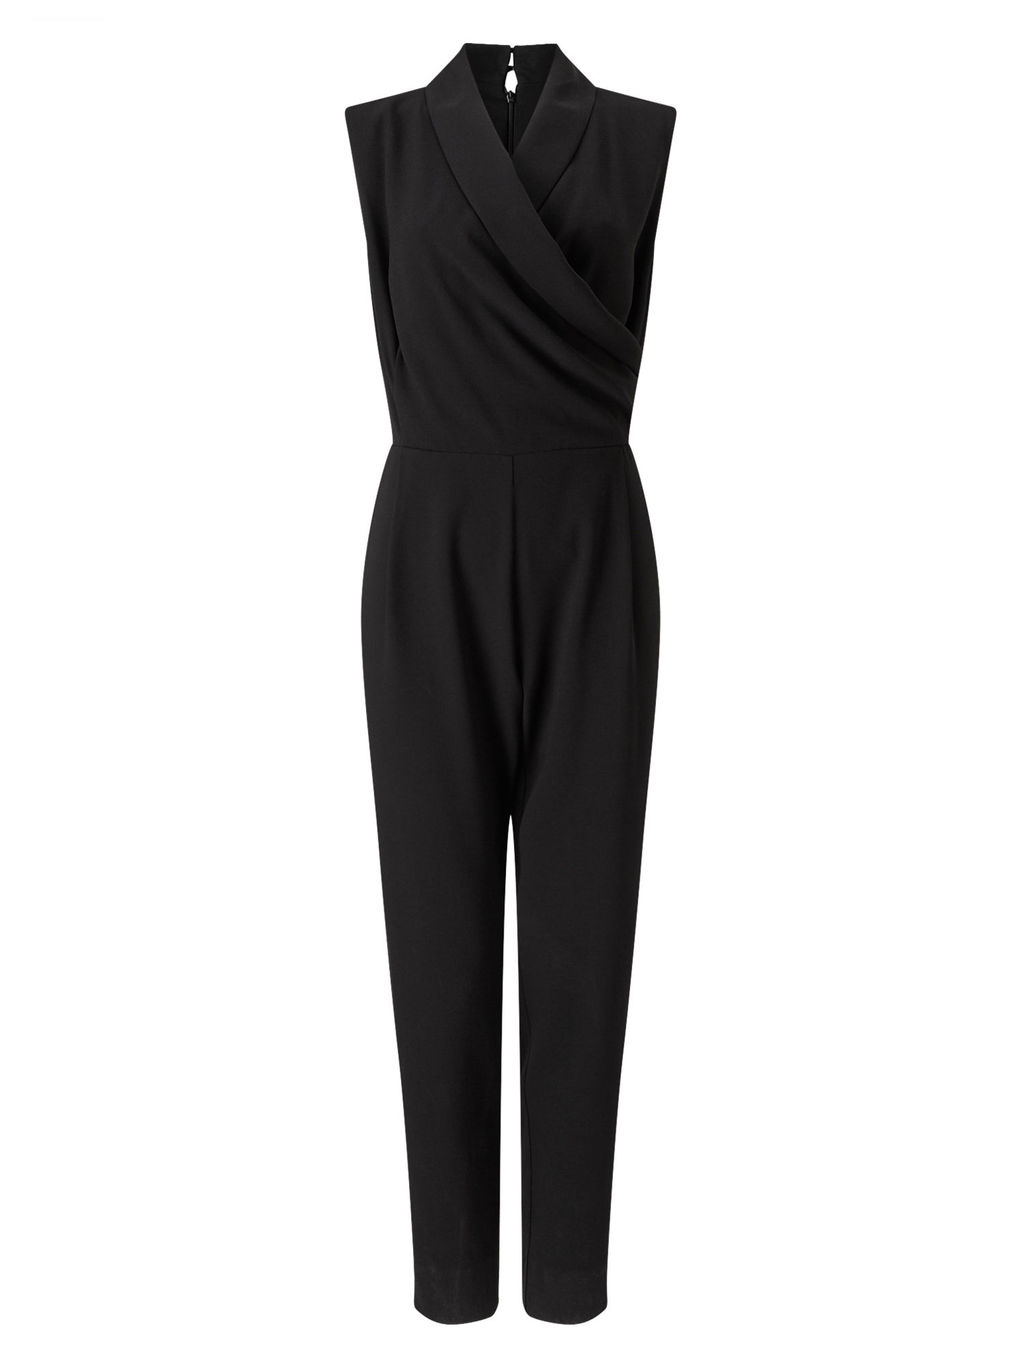 Wrap Top Jumpsuit - length: standard; neckline: v-neck; pattern: plain; sleeve style: sleeveless; predominant colour: black; occasions: evening; fit: body skimming; fibres: polyester/polyamide - 100%; sleeve length: sleeveless; style: jumpsuit; pattern type: fabric; texture group: jersey - stretchy/drapey; season: s/s 2016